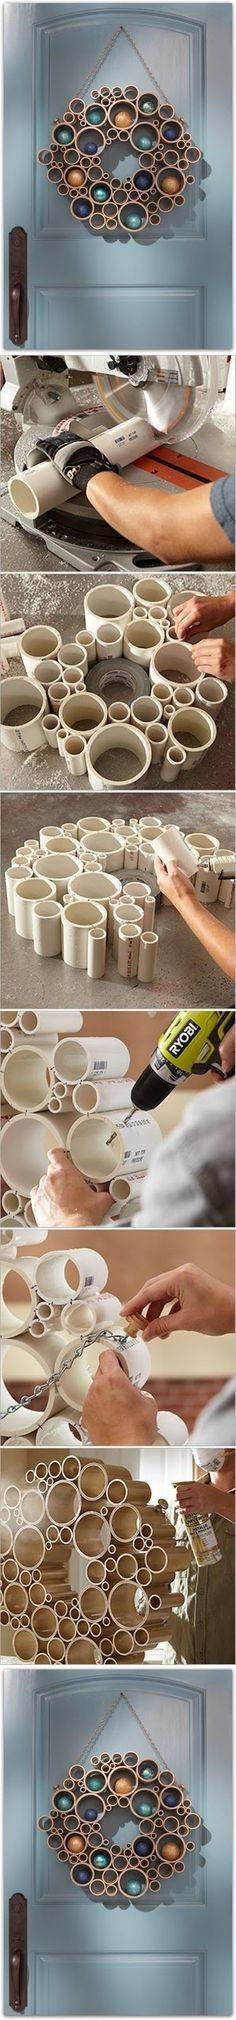 diy by Claunilla For Kana Pipeline Inc perfect !